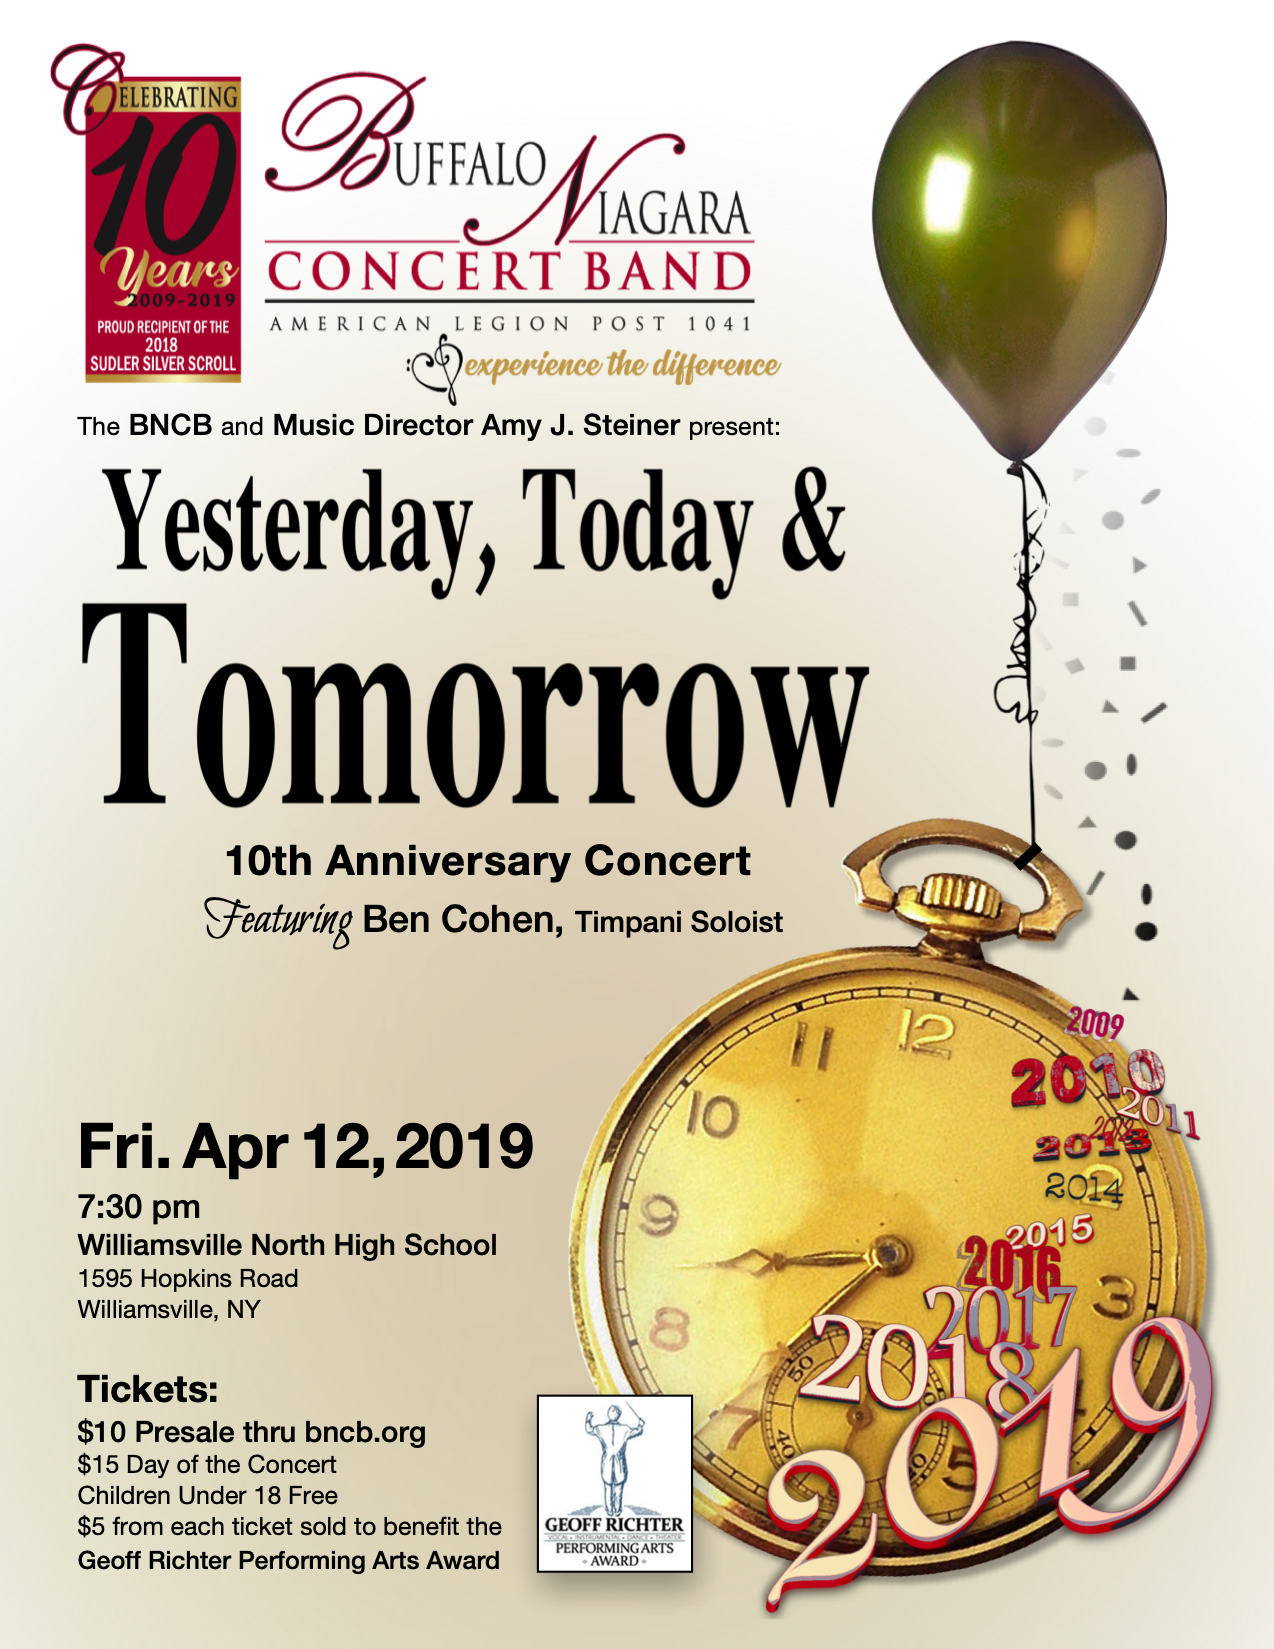 Yesterday, Today, and Tomorrow — 10th Anniversary Concert @ Williamsville North High School